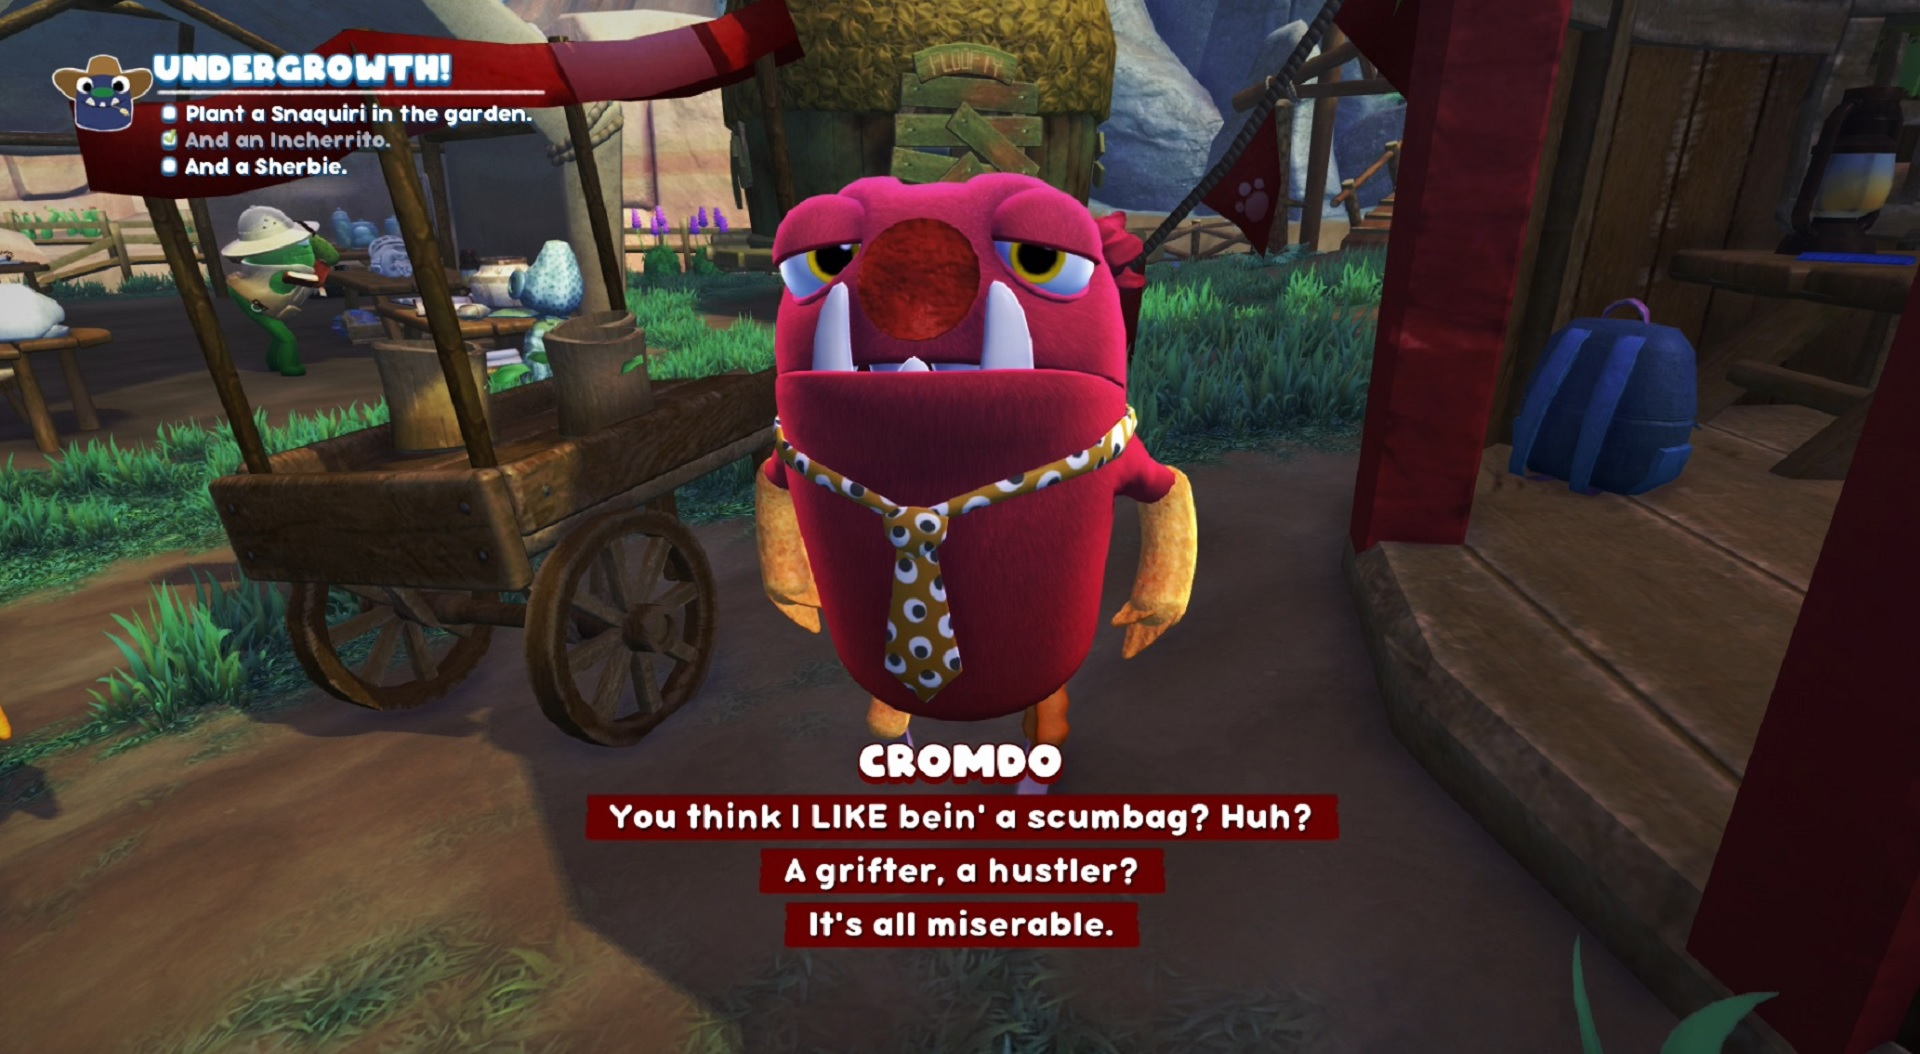 There are some deep conversations had with Grumpuses throughout the game.